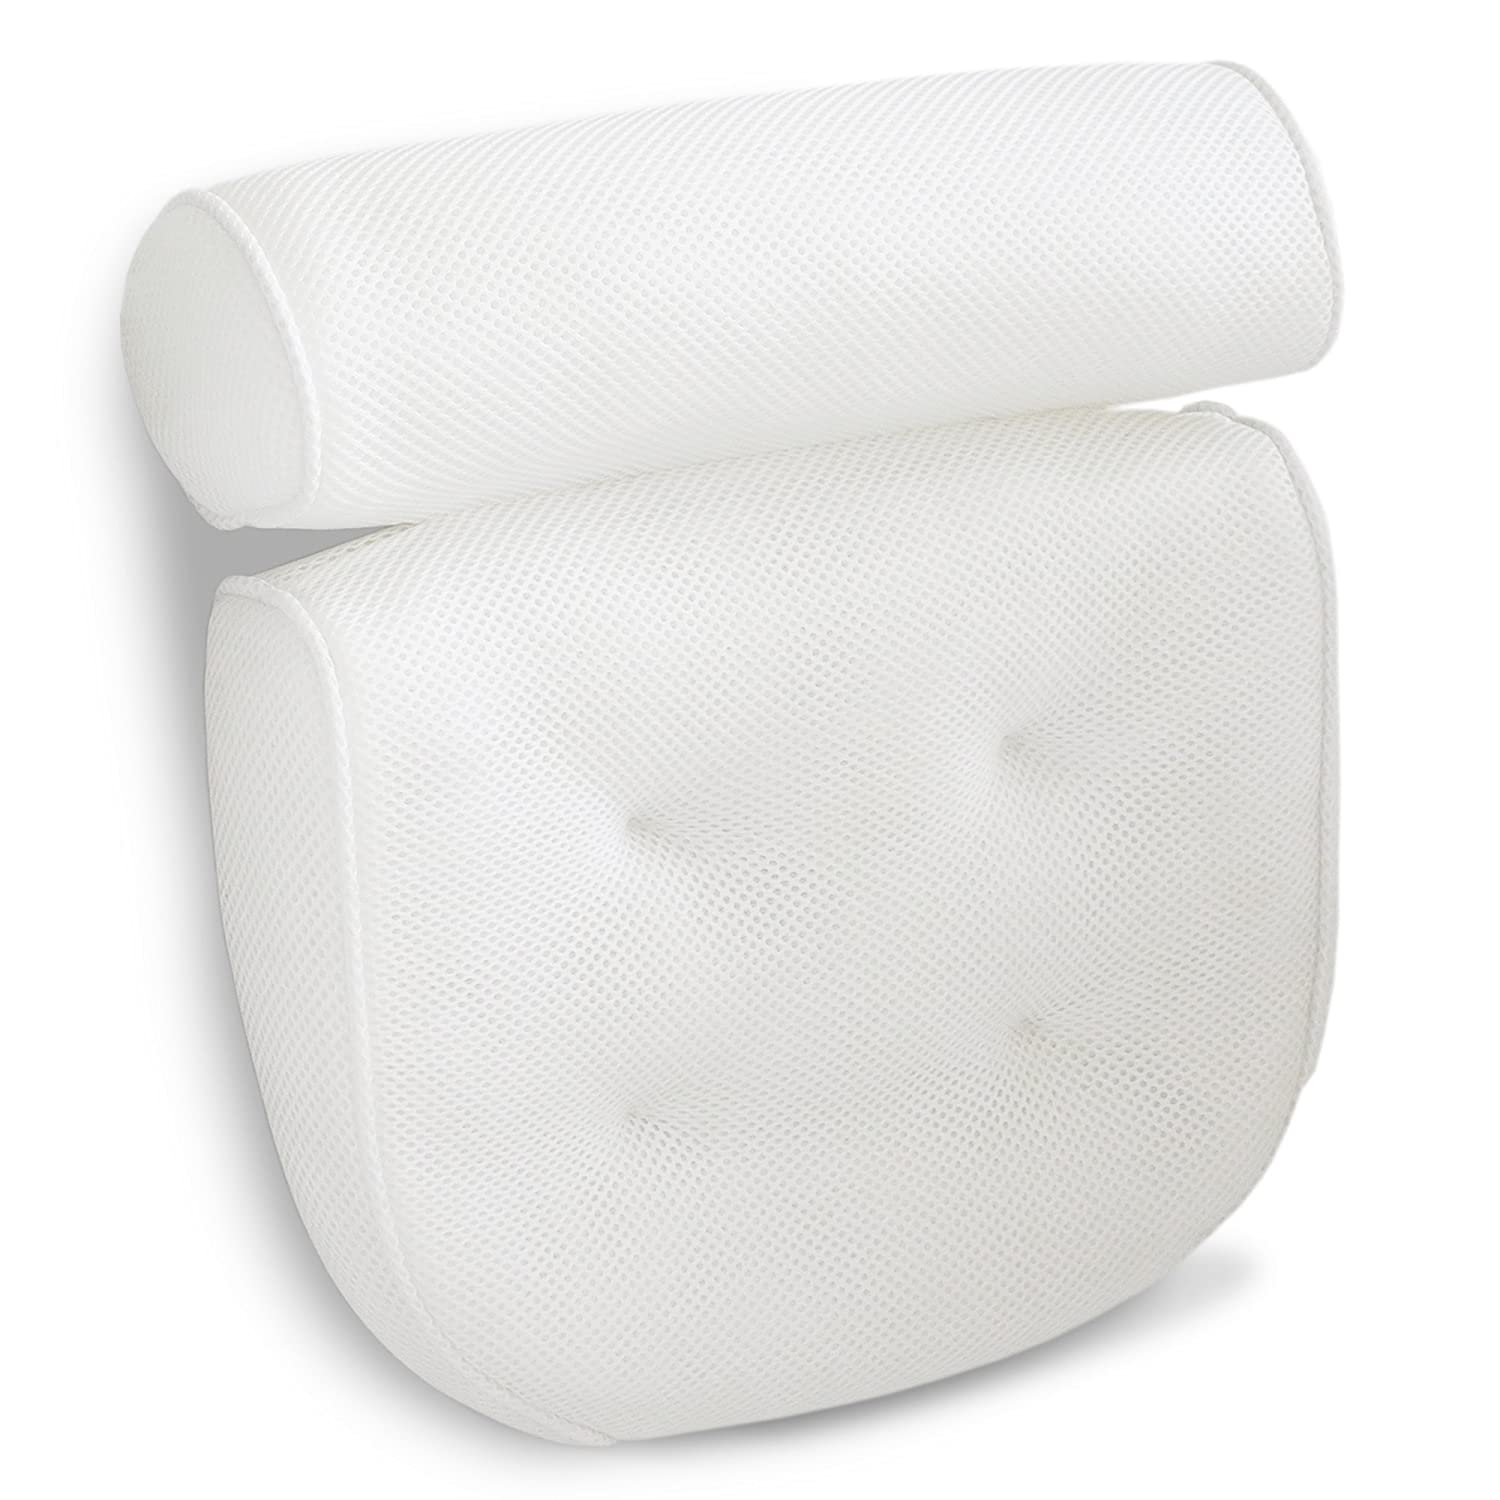 Amazon.com: Bath Pillows: Beauty & Personal Care